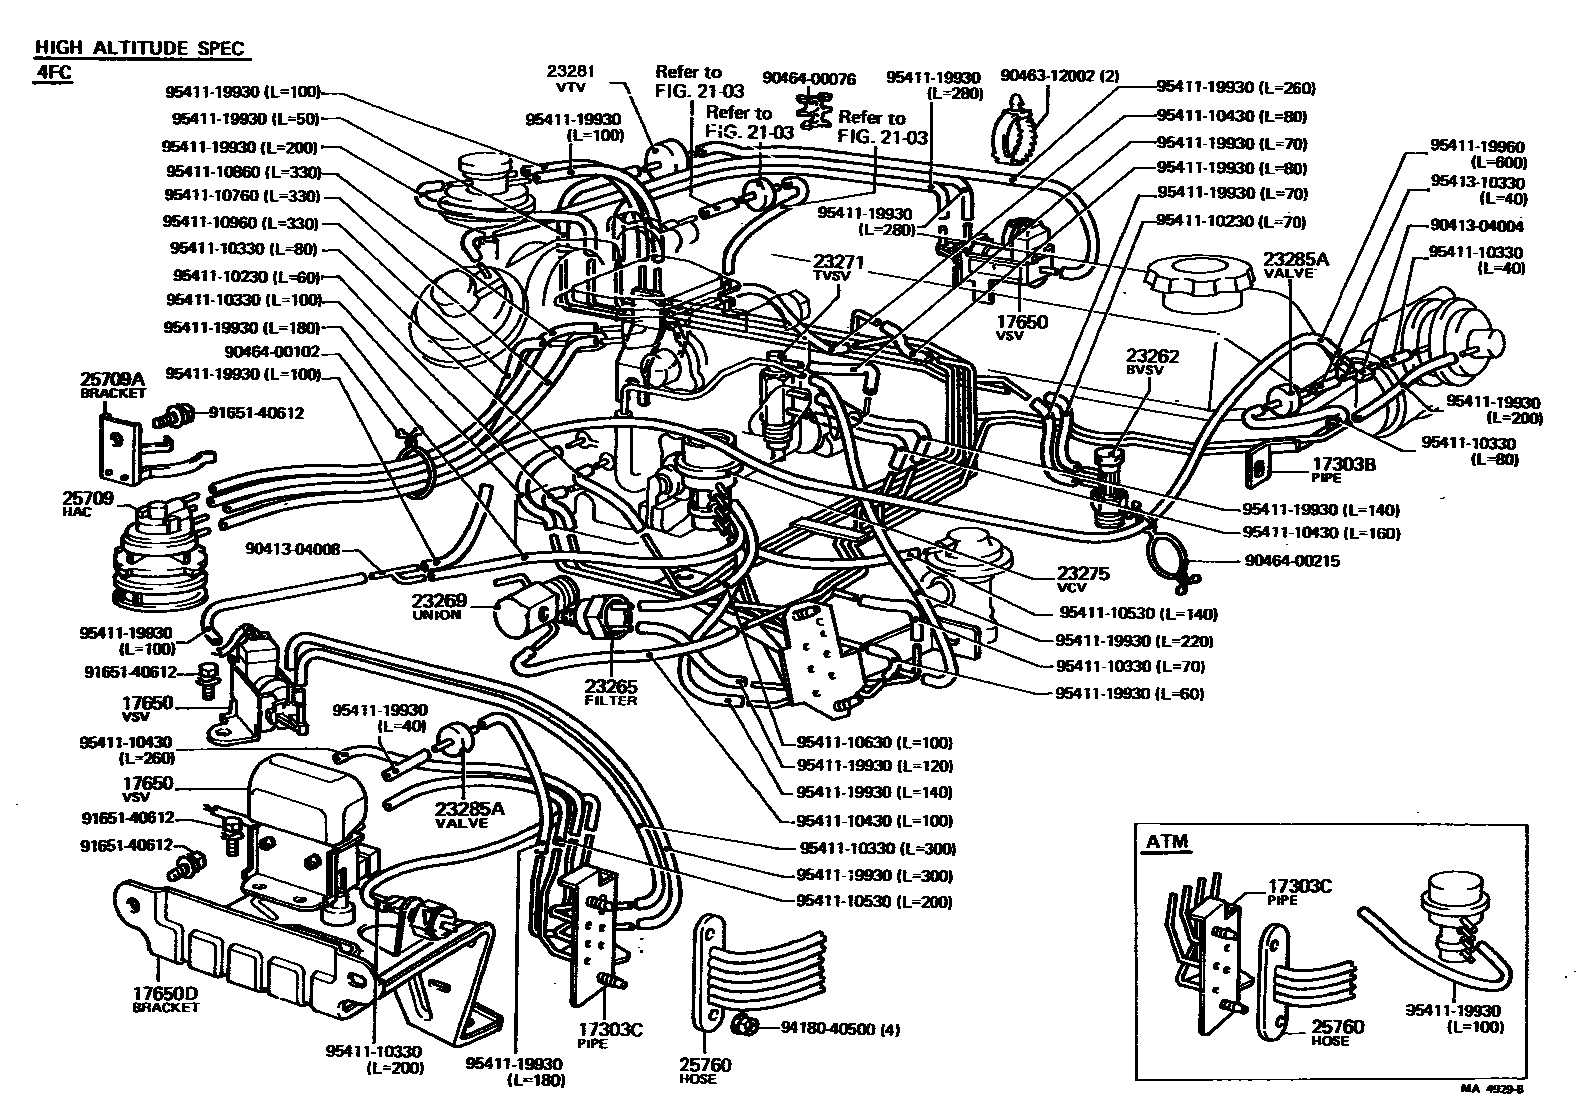 hight resolution of 1993 toyota land cruiser engine diagram detailed wiring diagramtoyota t100 engine diagram wiring diagram todays 1993